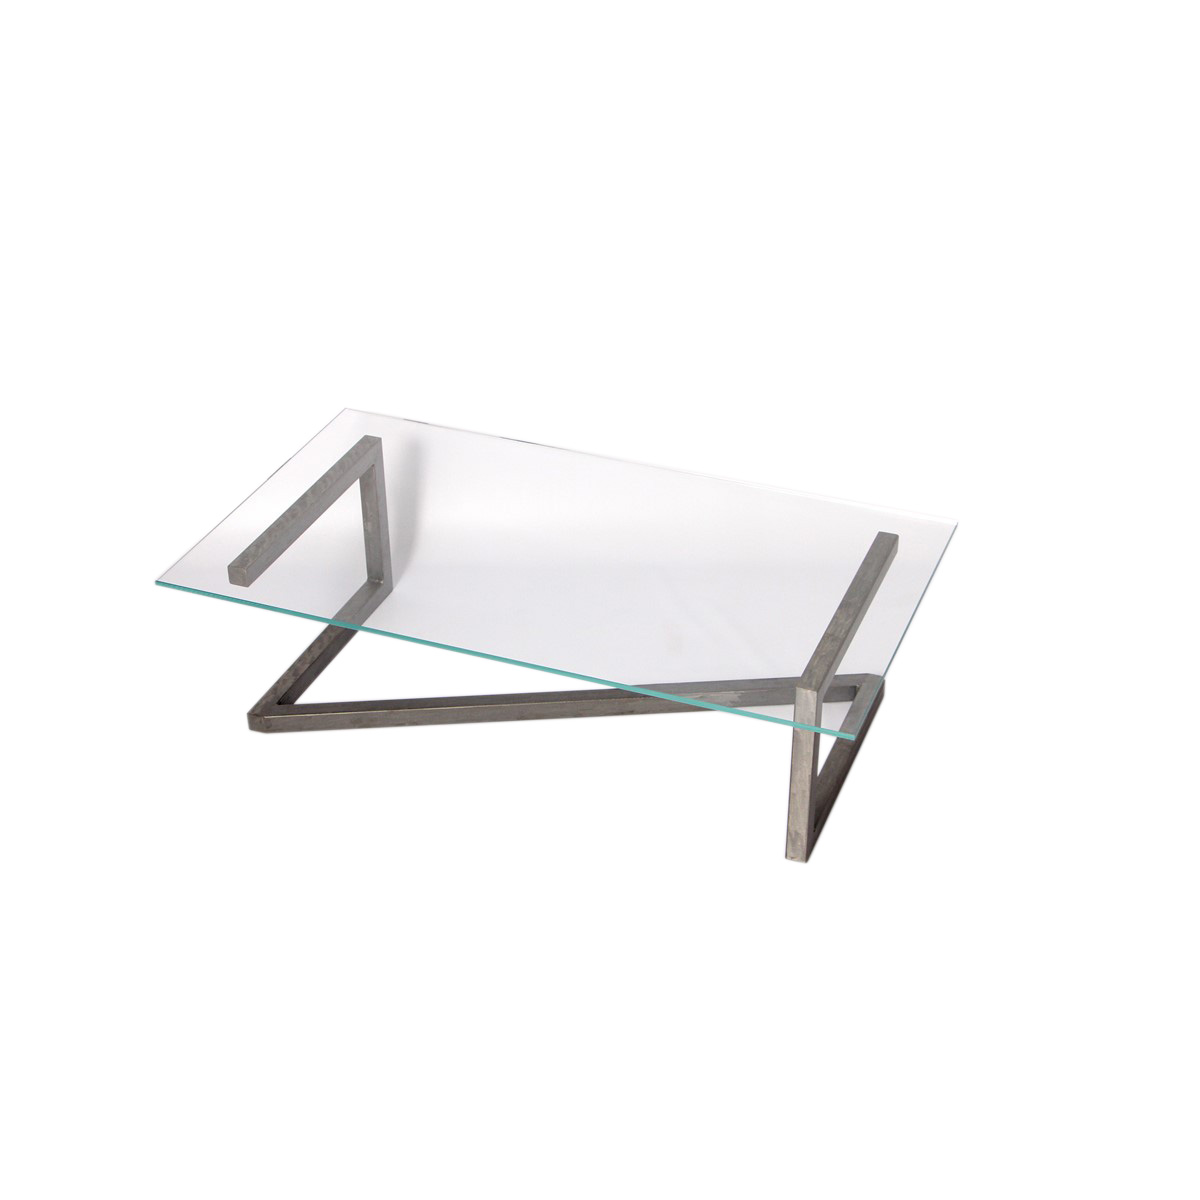 Table basse verre metal design - Tables basses design en verre ...